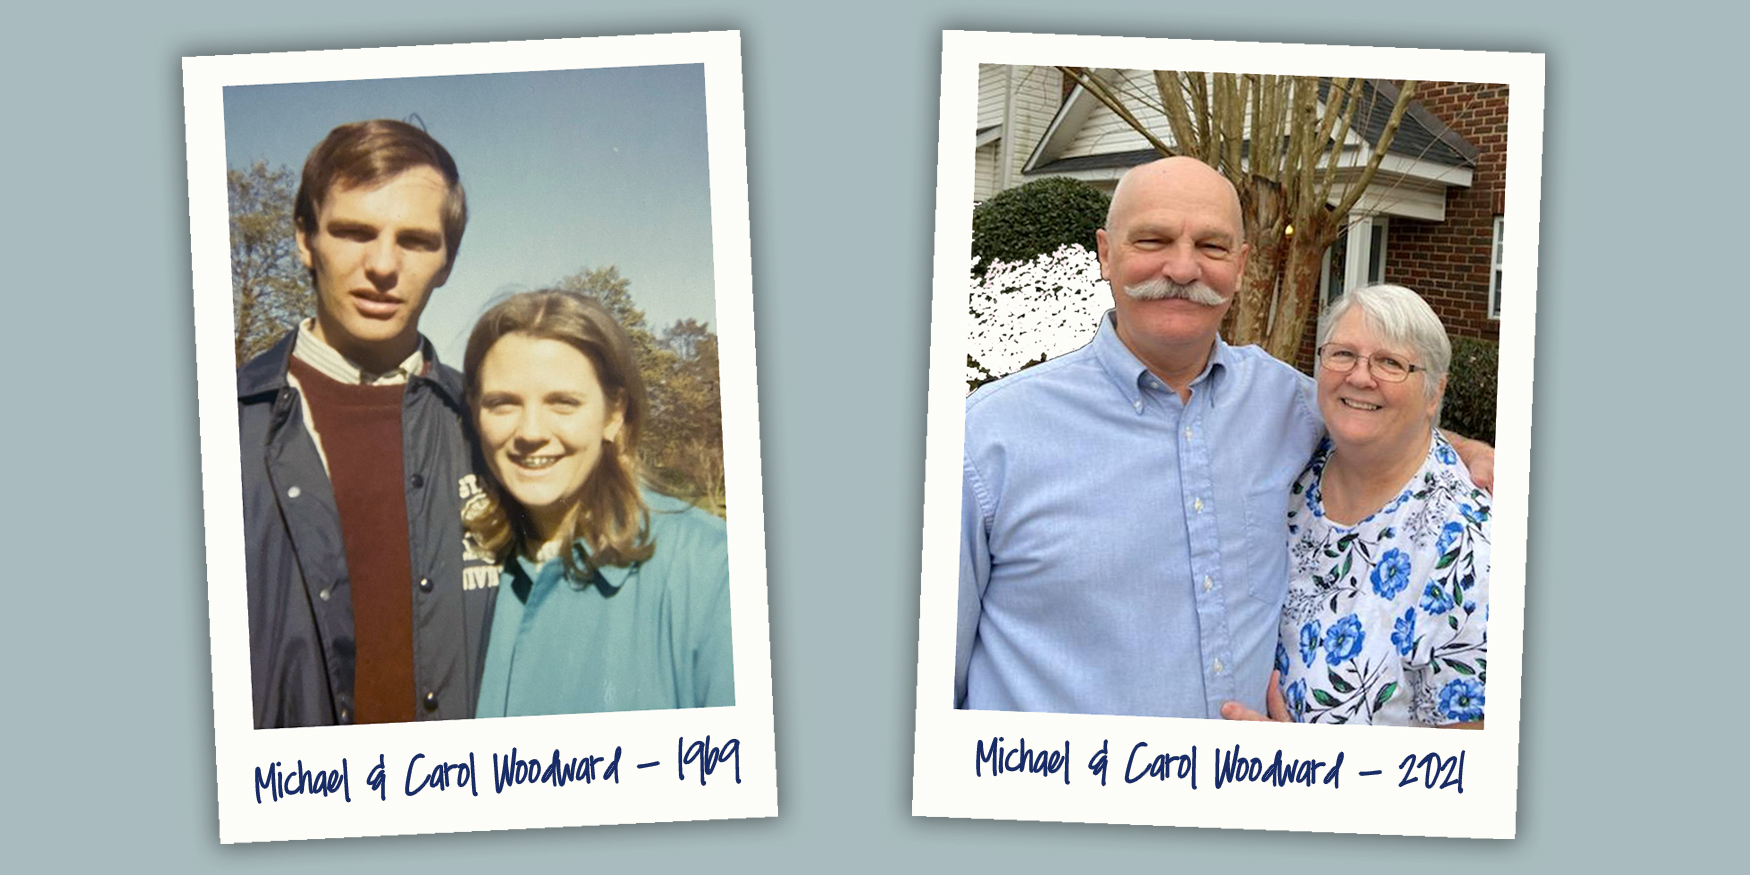 Mike and Carol_then and now